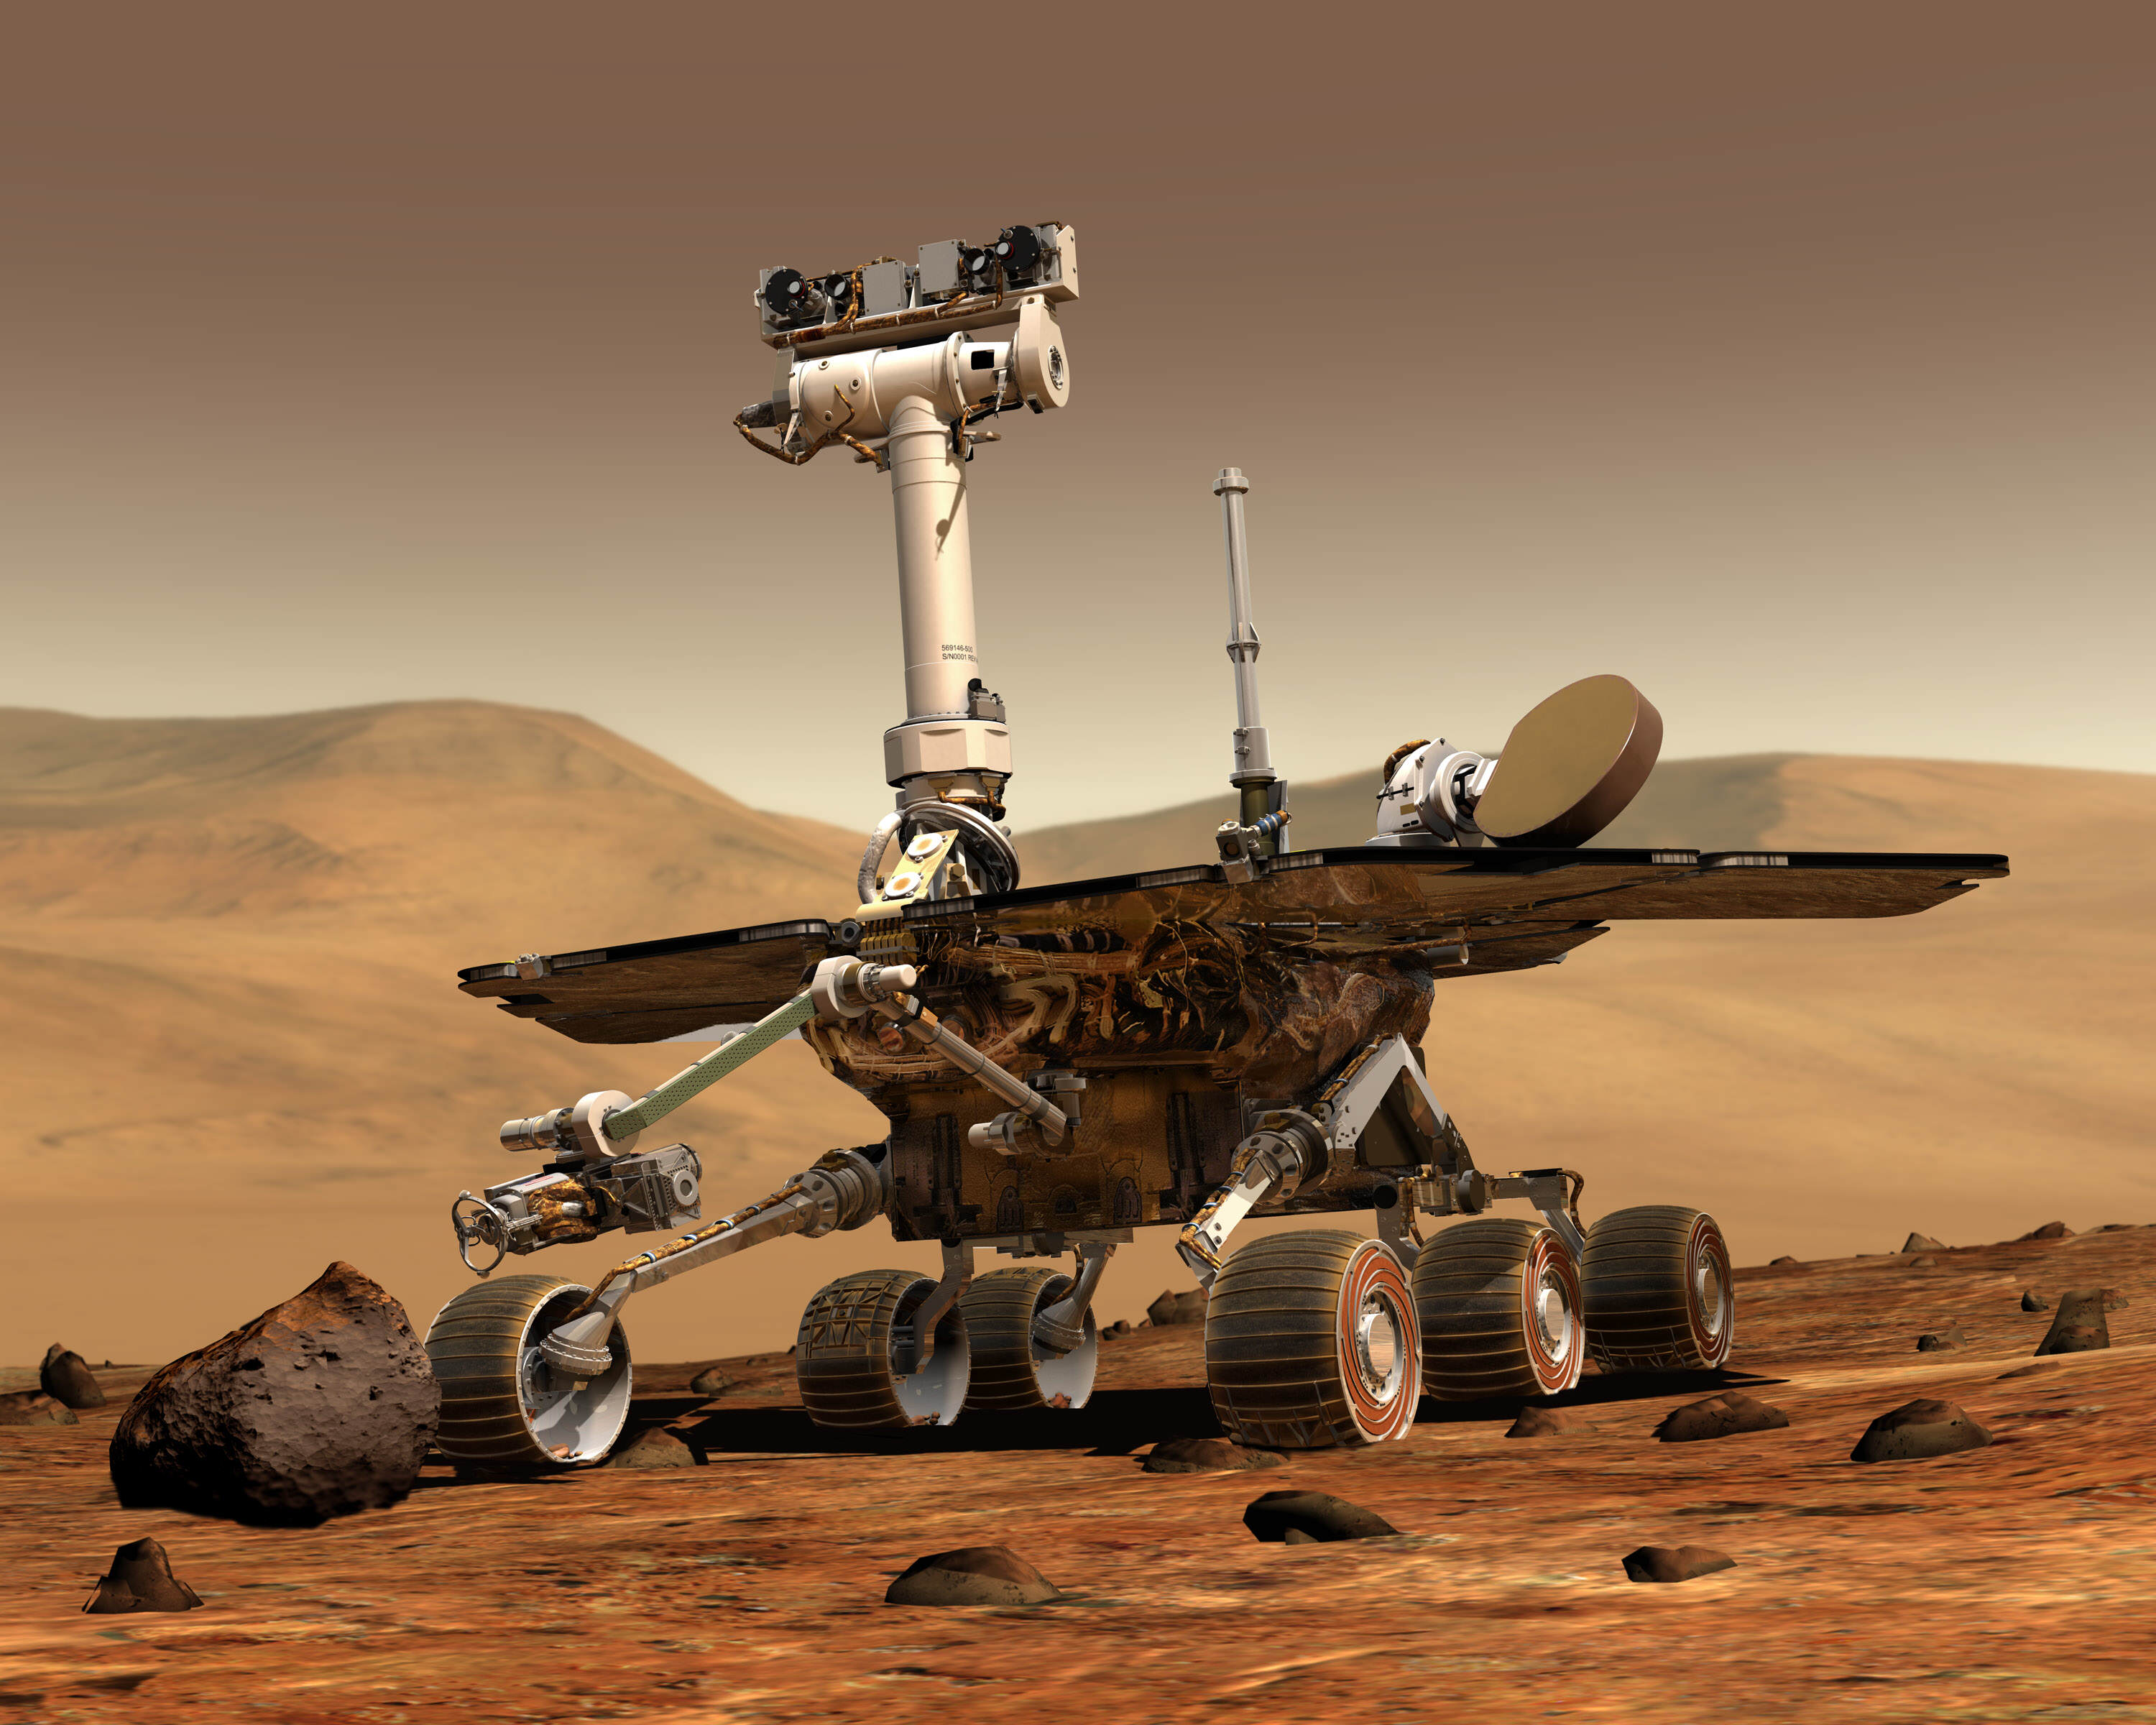 rover Europe And Russia To Go On Alien Hunting Mission To Find Life On Mars